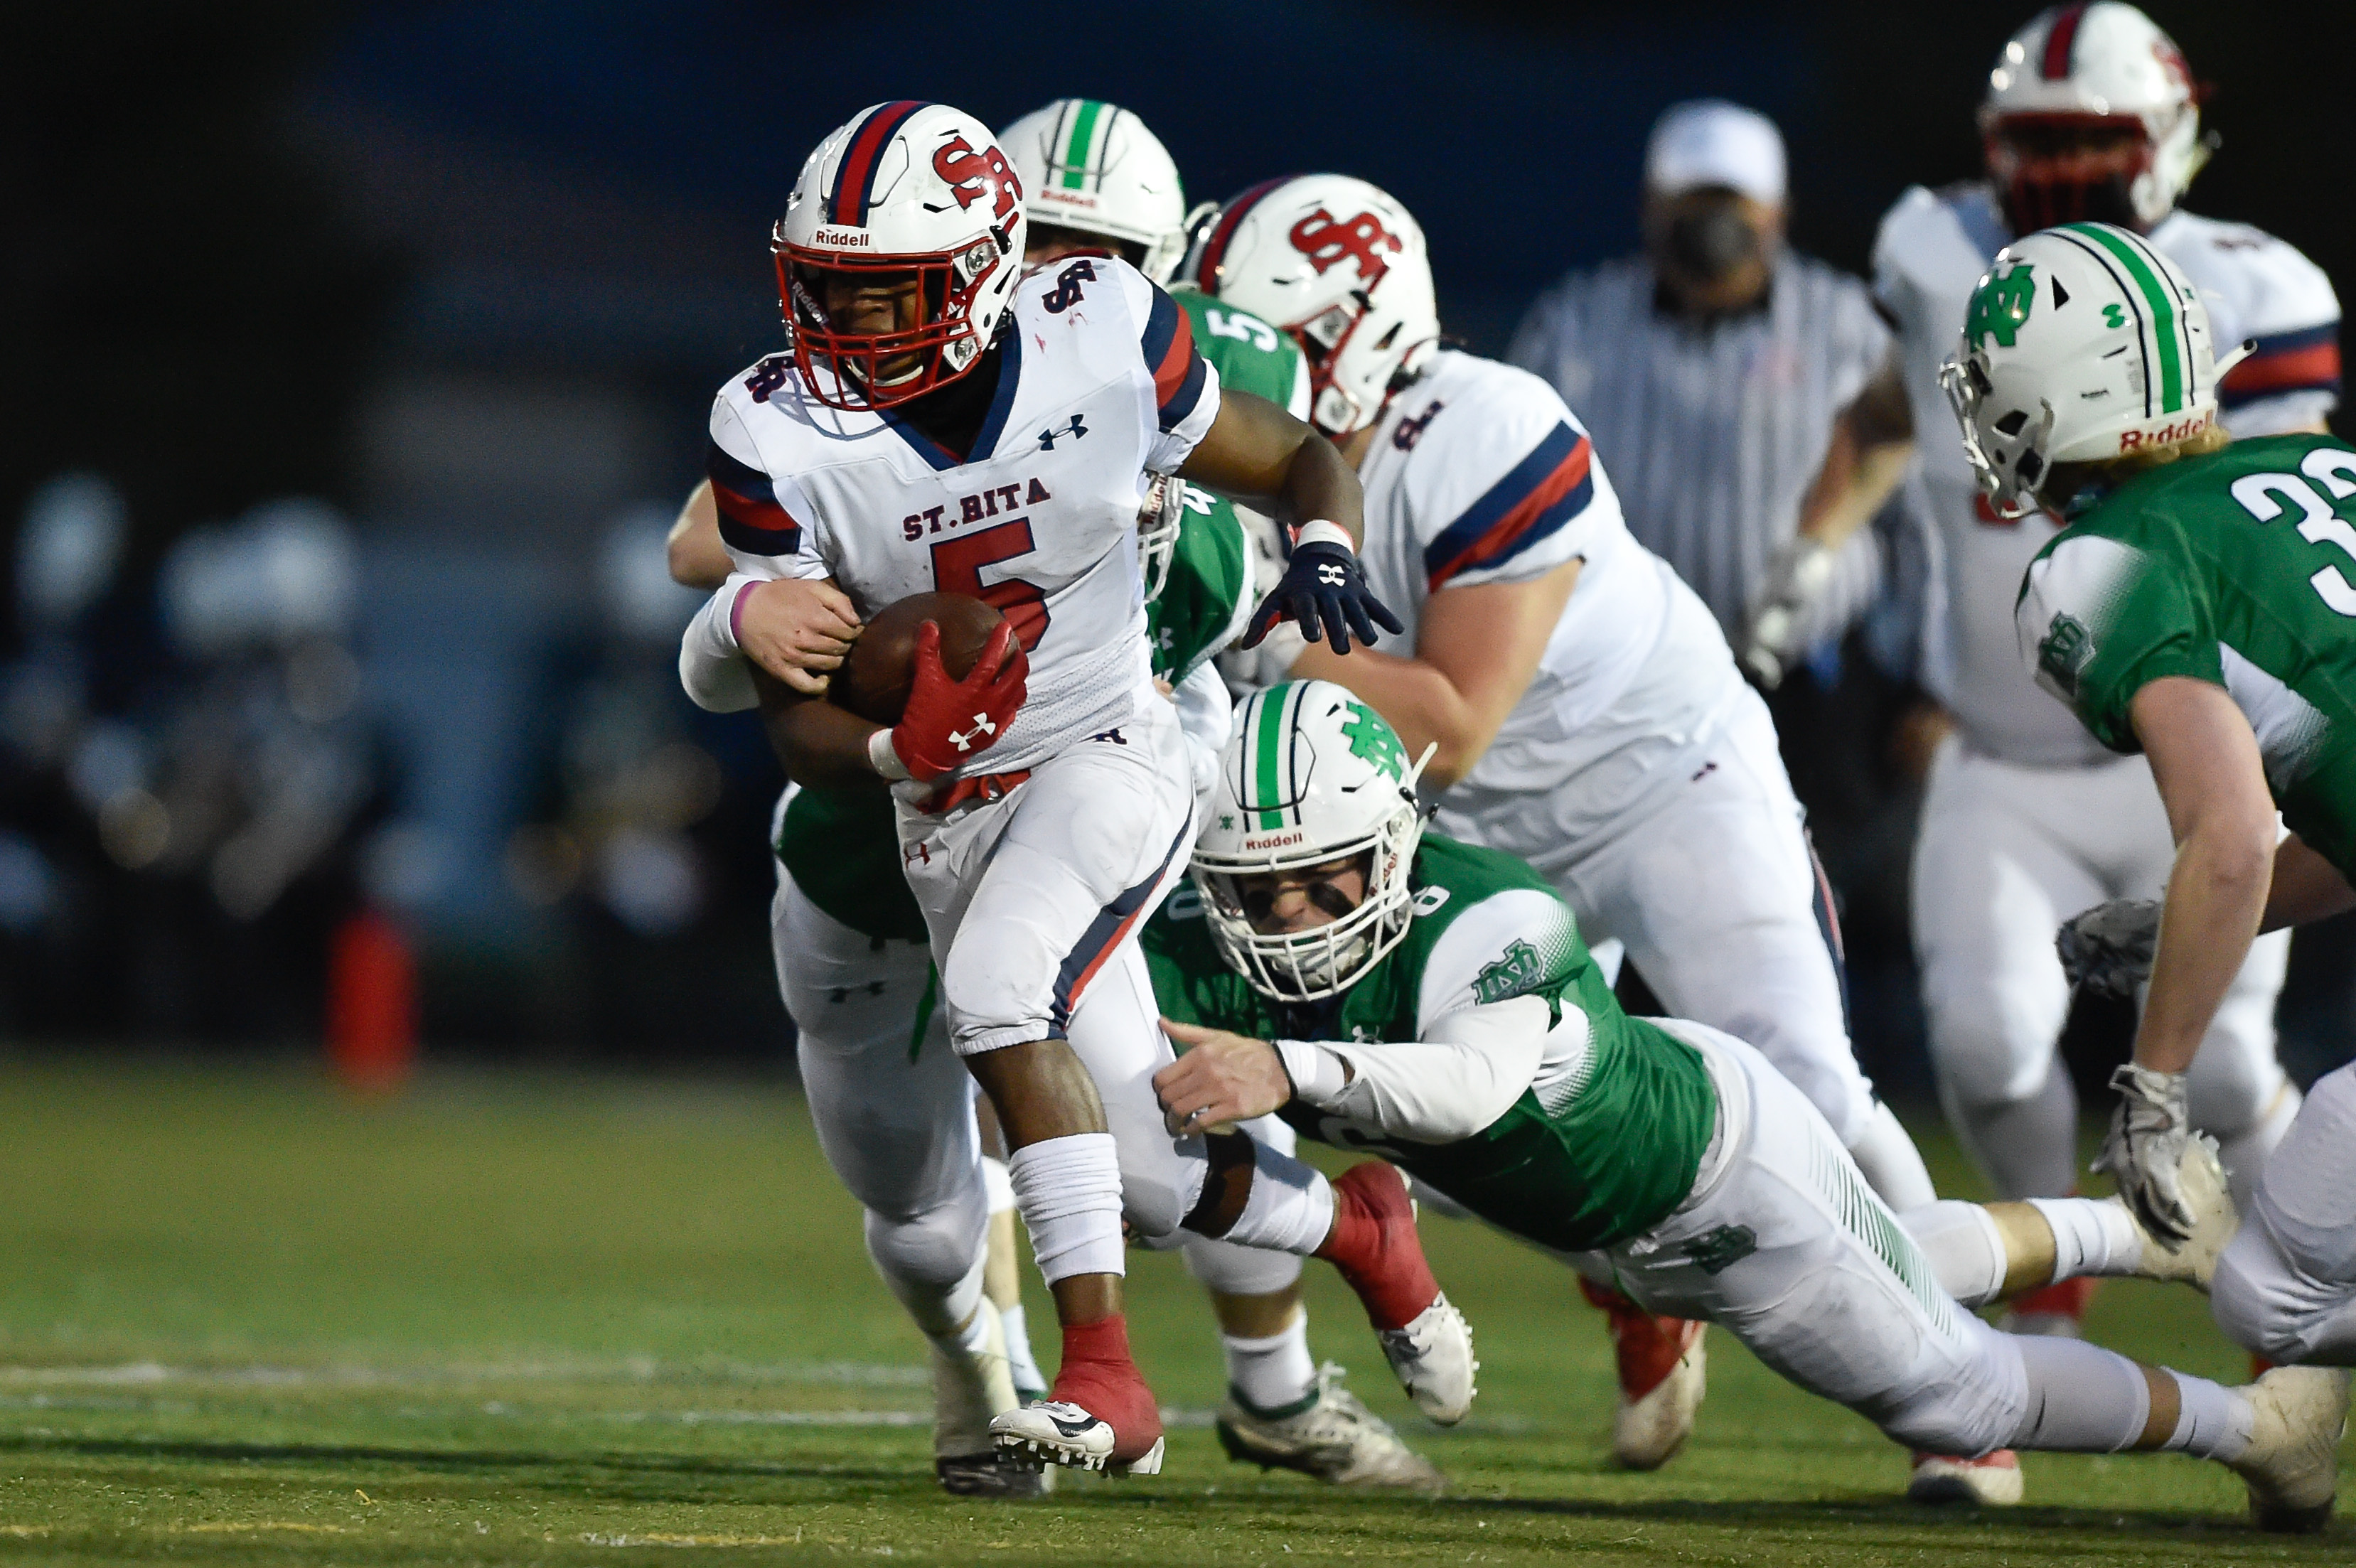 St. Rita's Kyle James (5) runs the ball past Notre Dame's defense.